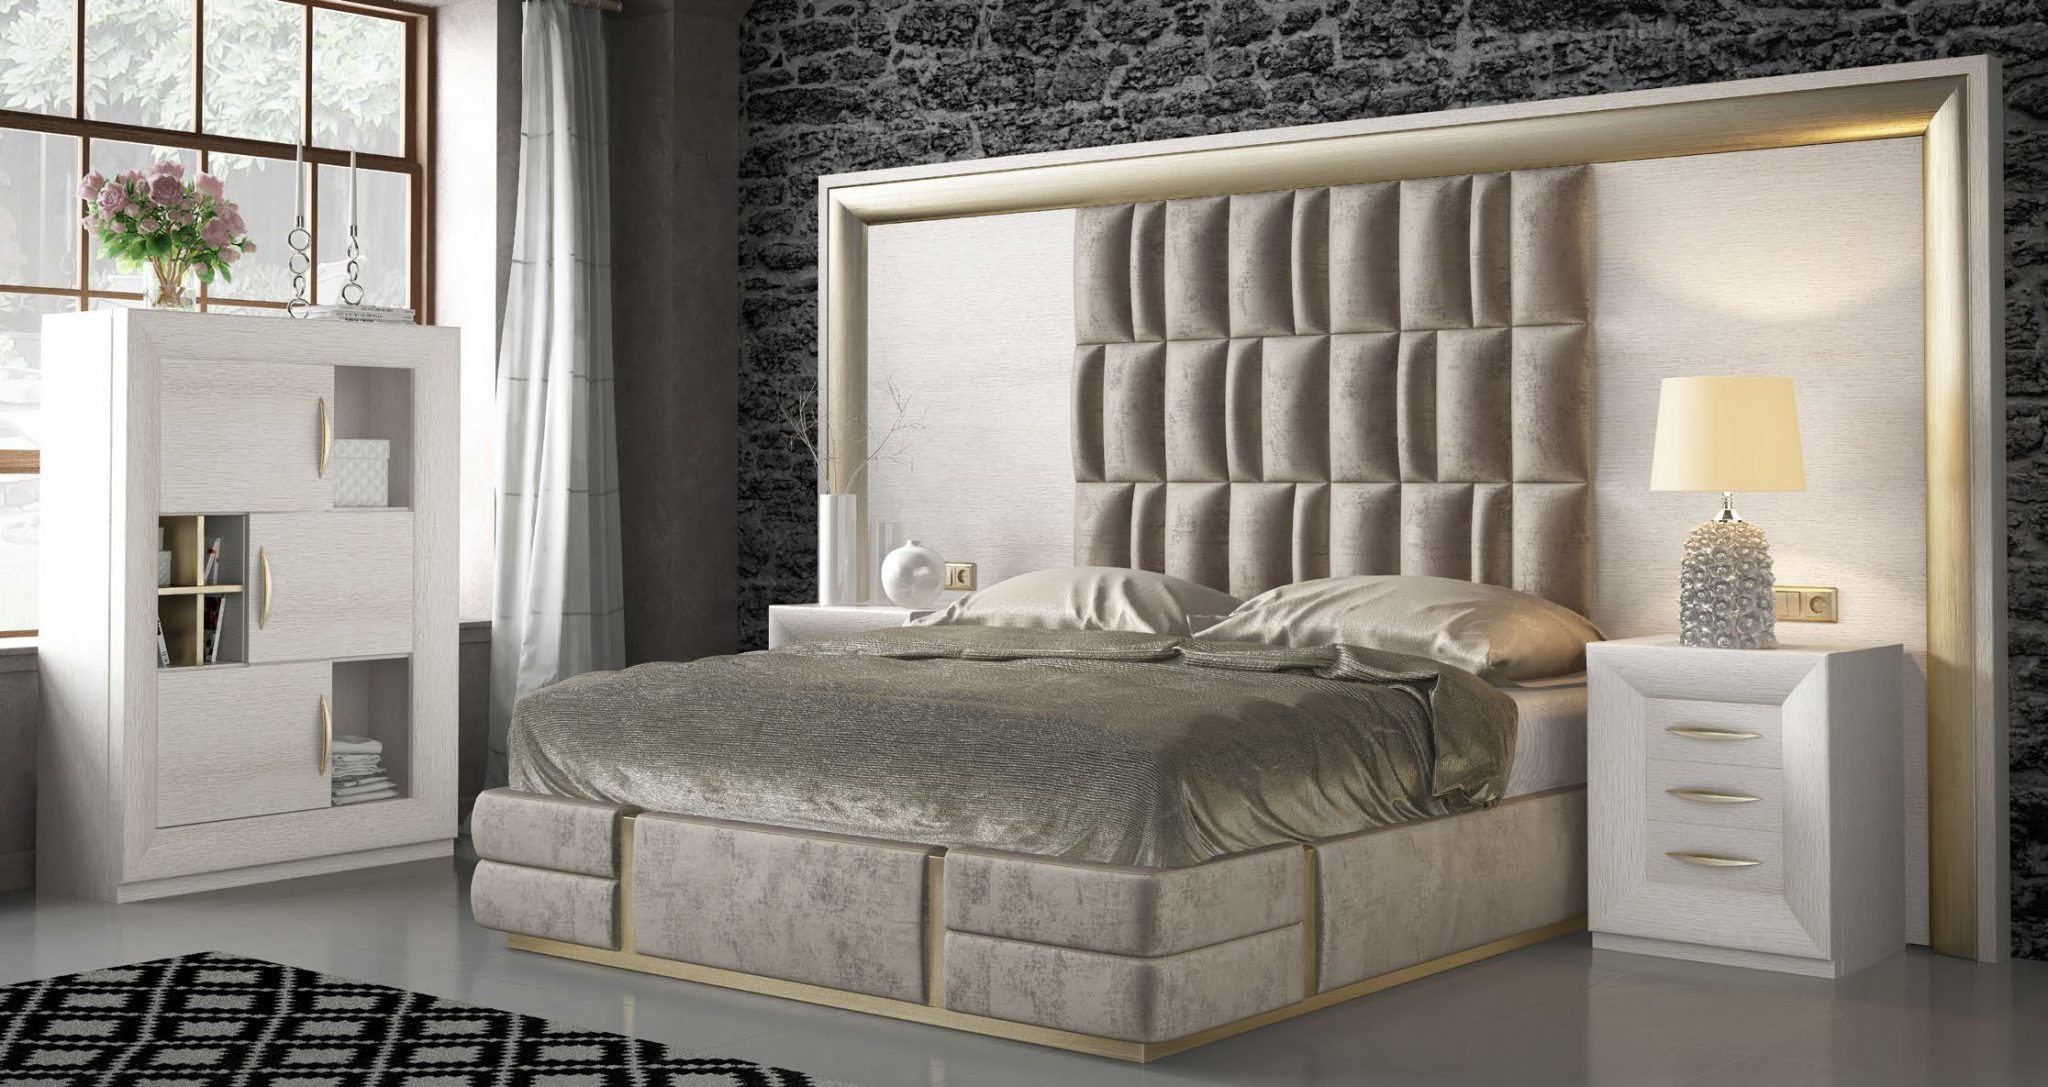 Decovarte bedroom D19